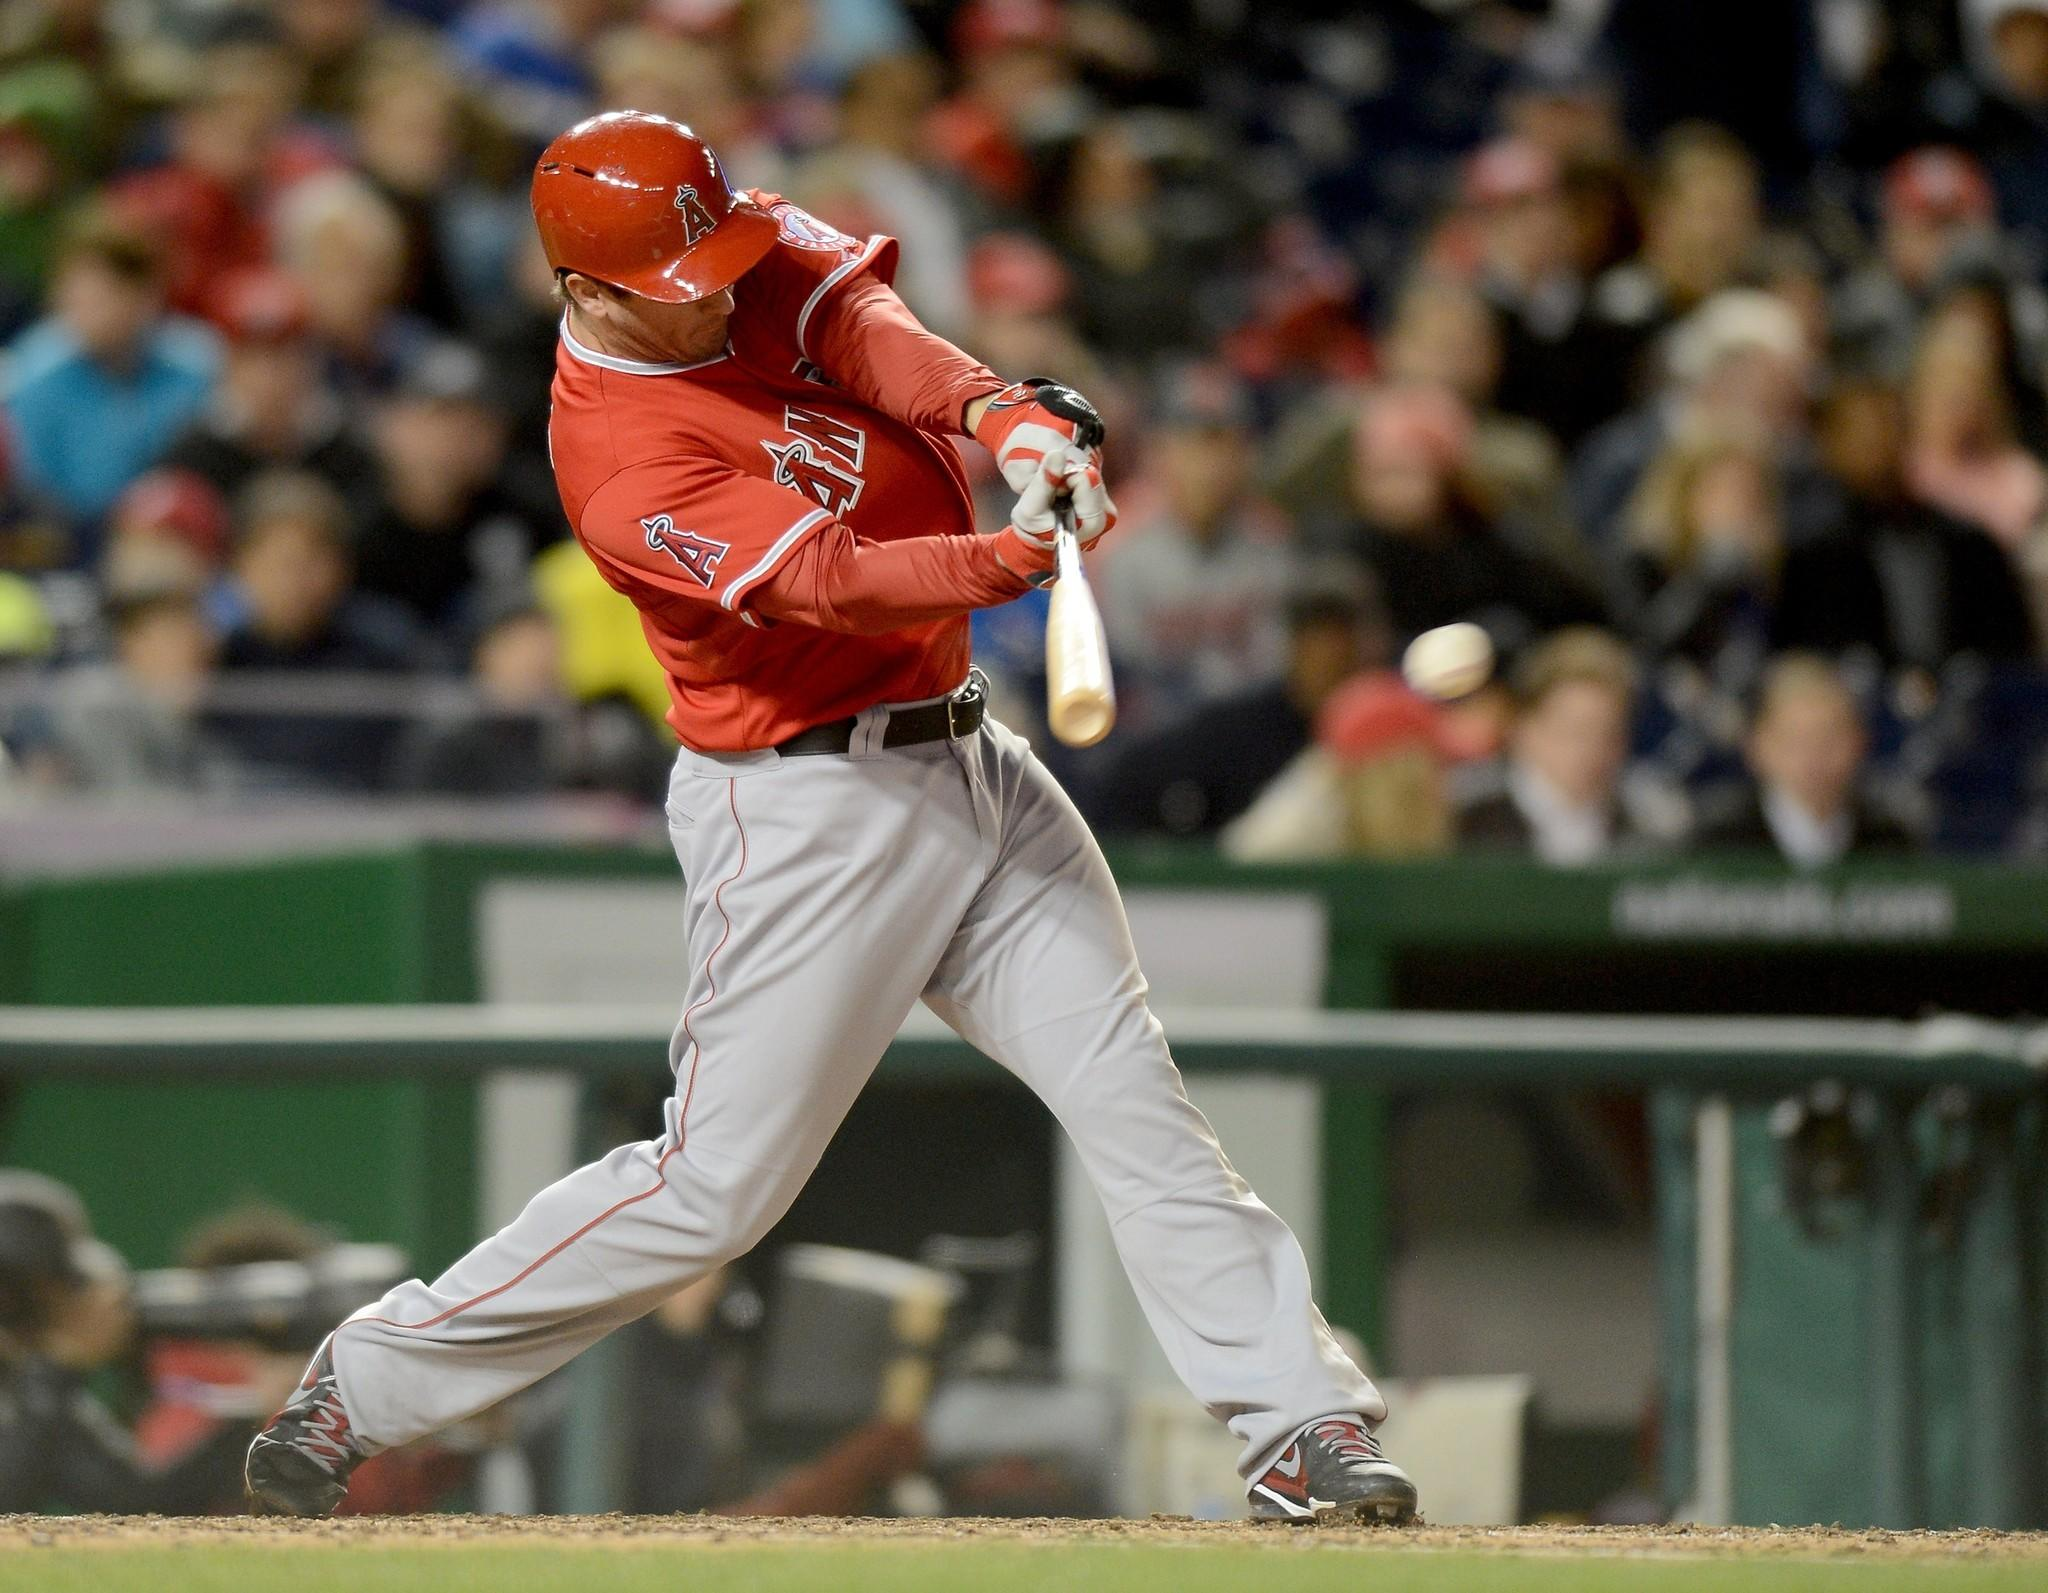 Angels third baseman David Freese has struggled at the plate this season, hitting .145 with one home run and 20 runs batted in.